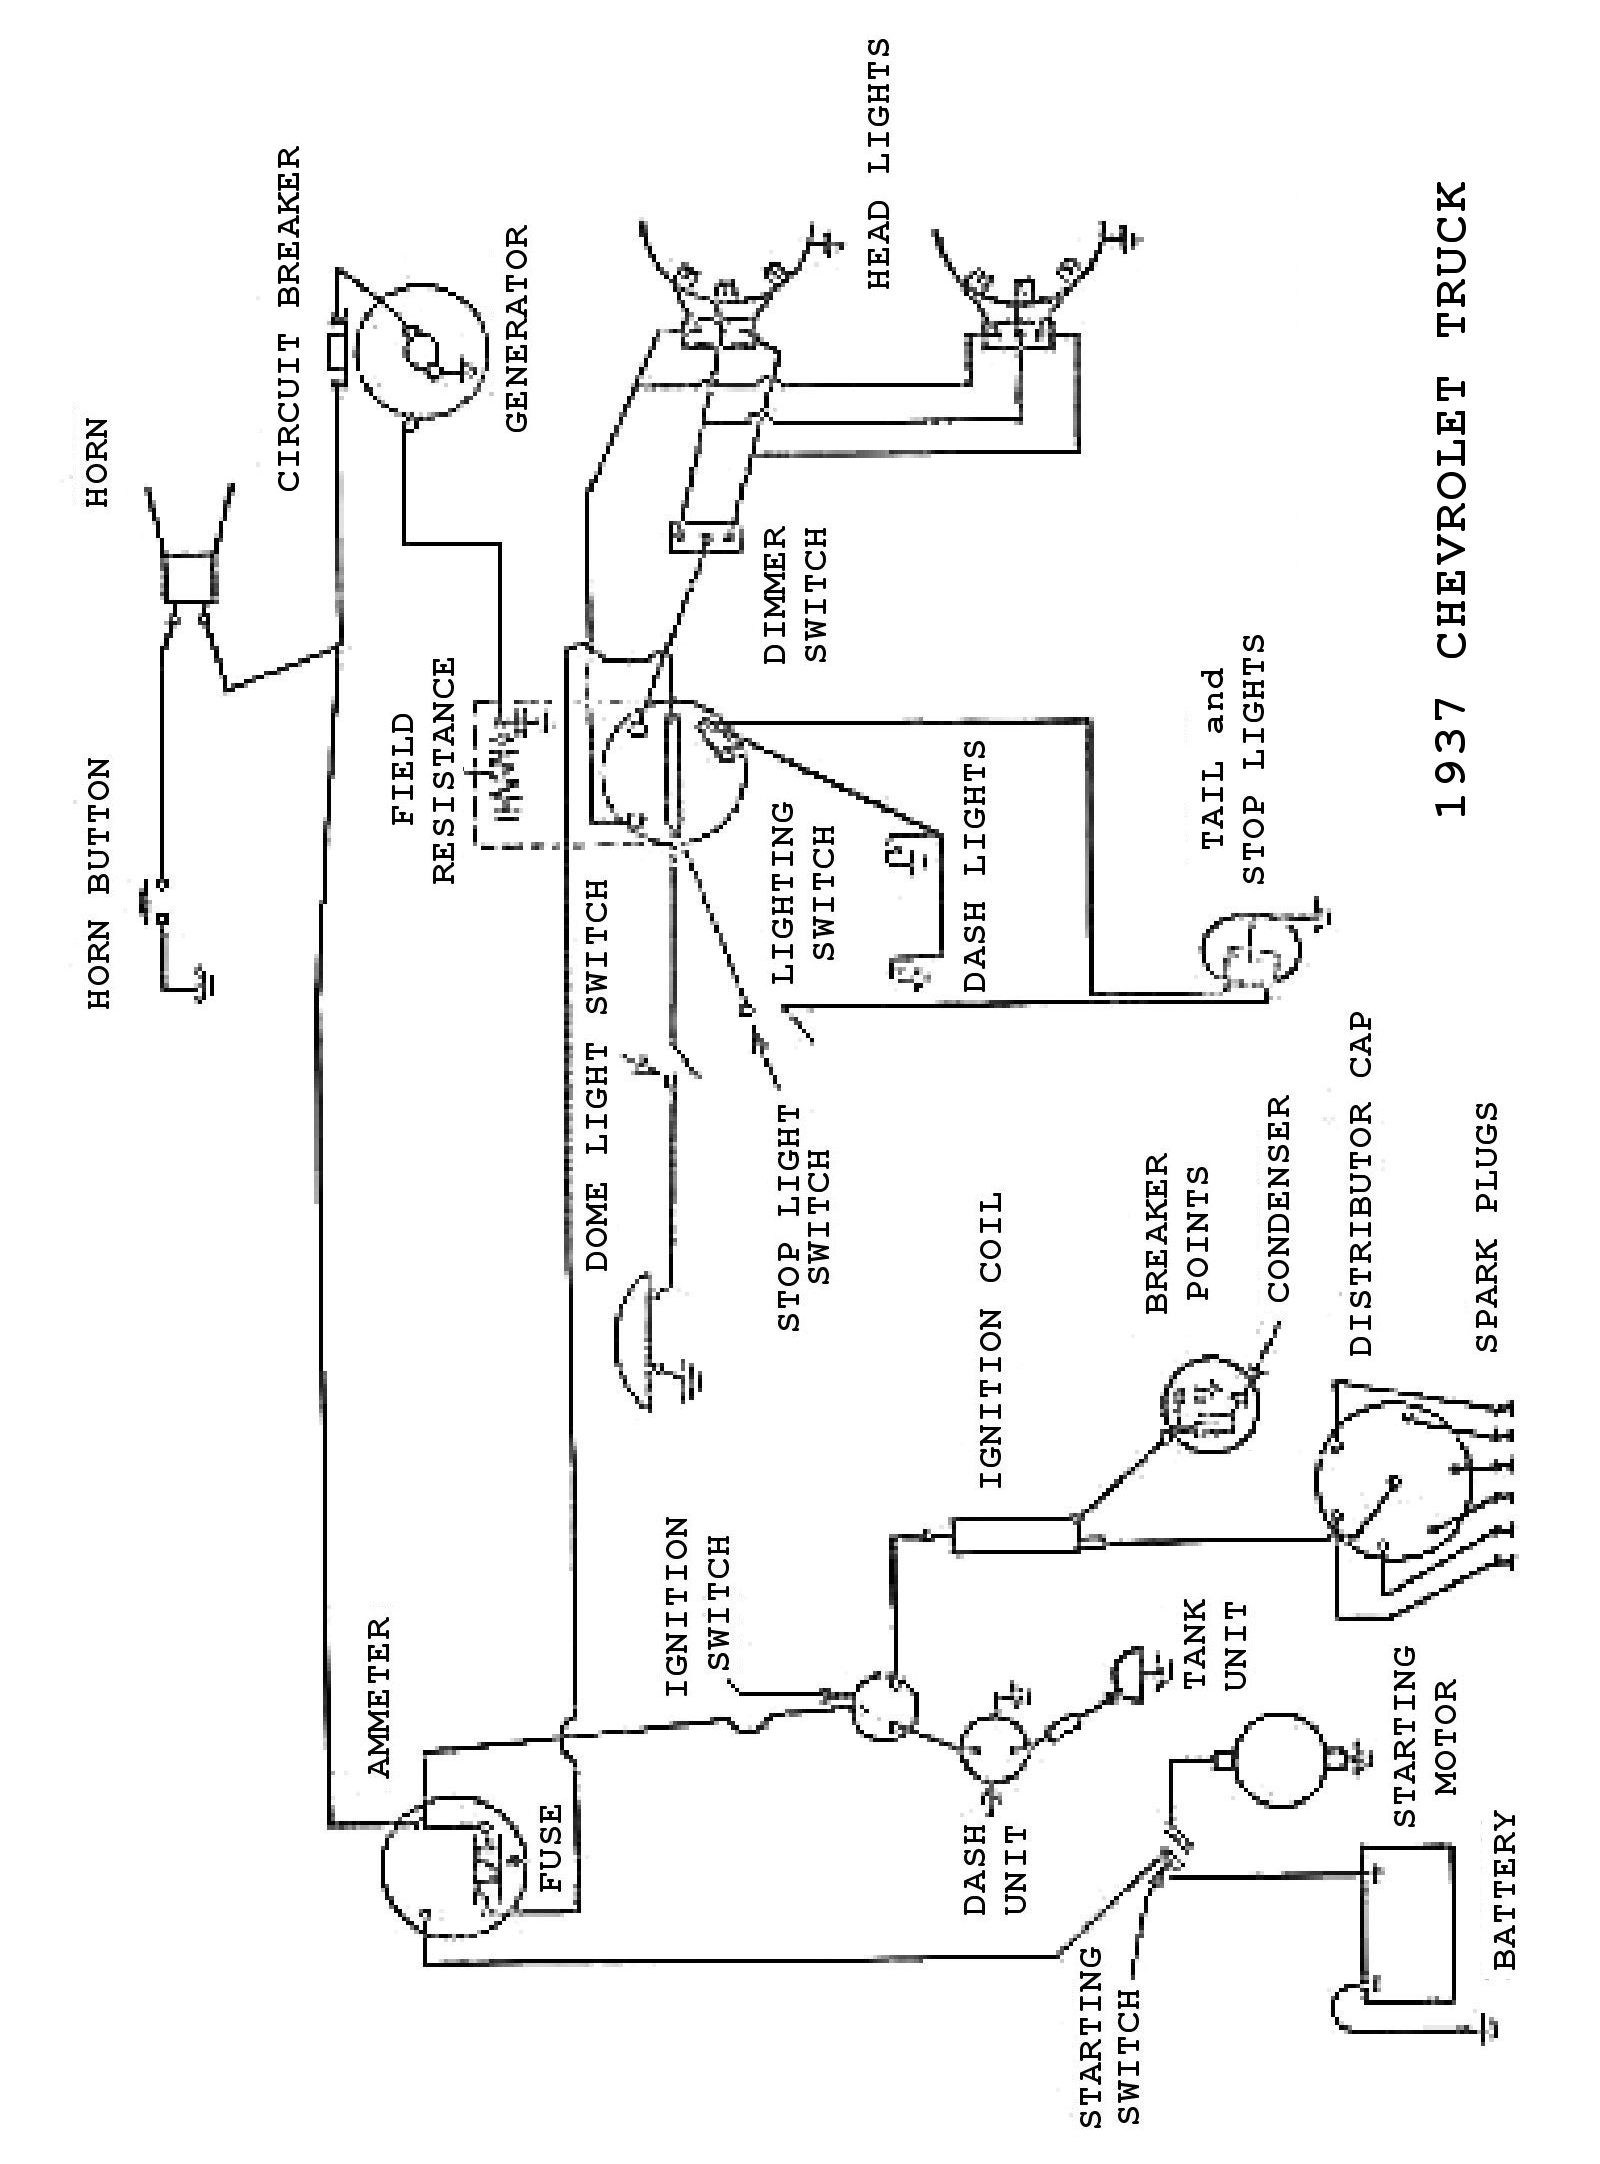 37truck chevy wiring diagrams are truck cap wiring diagram at bakdesigns.co